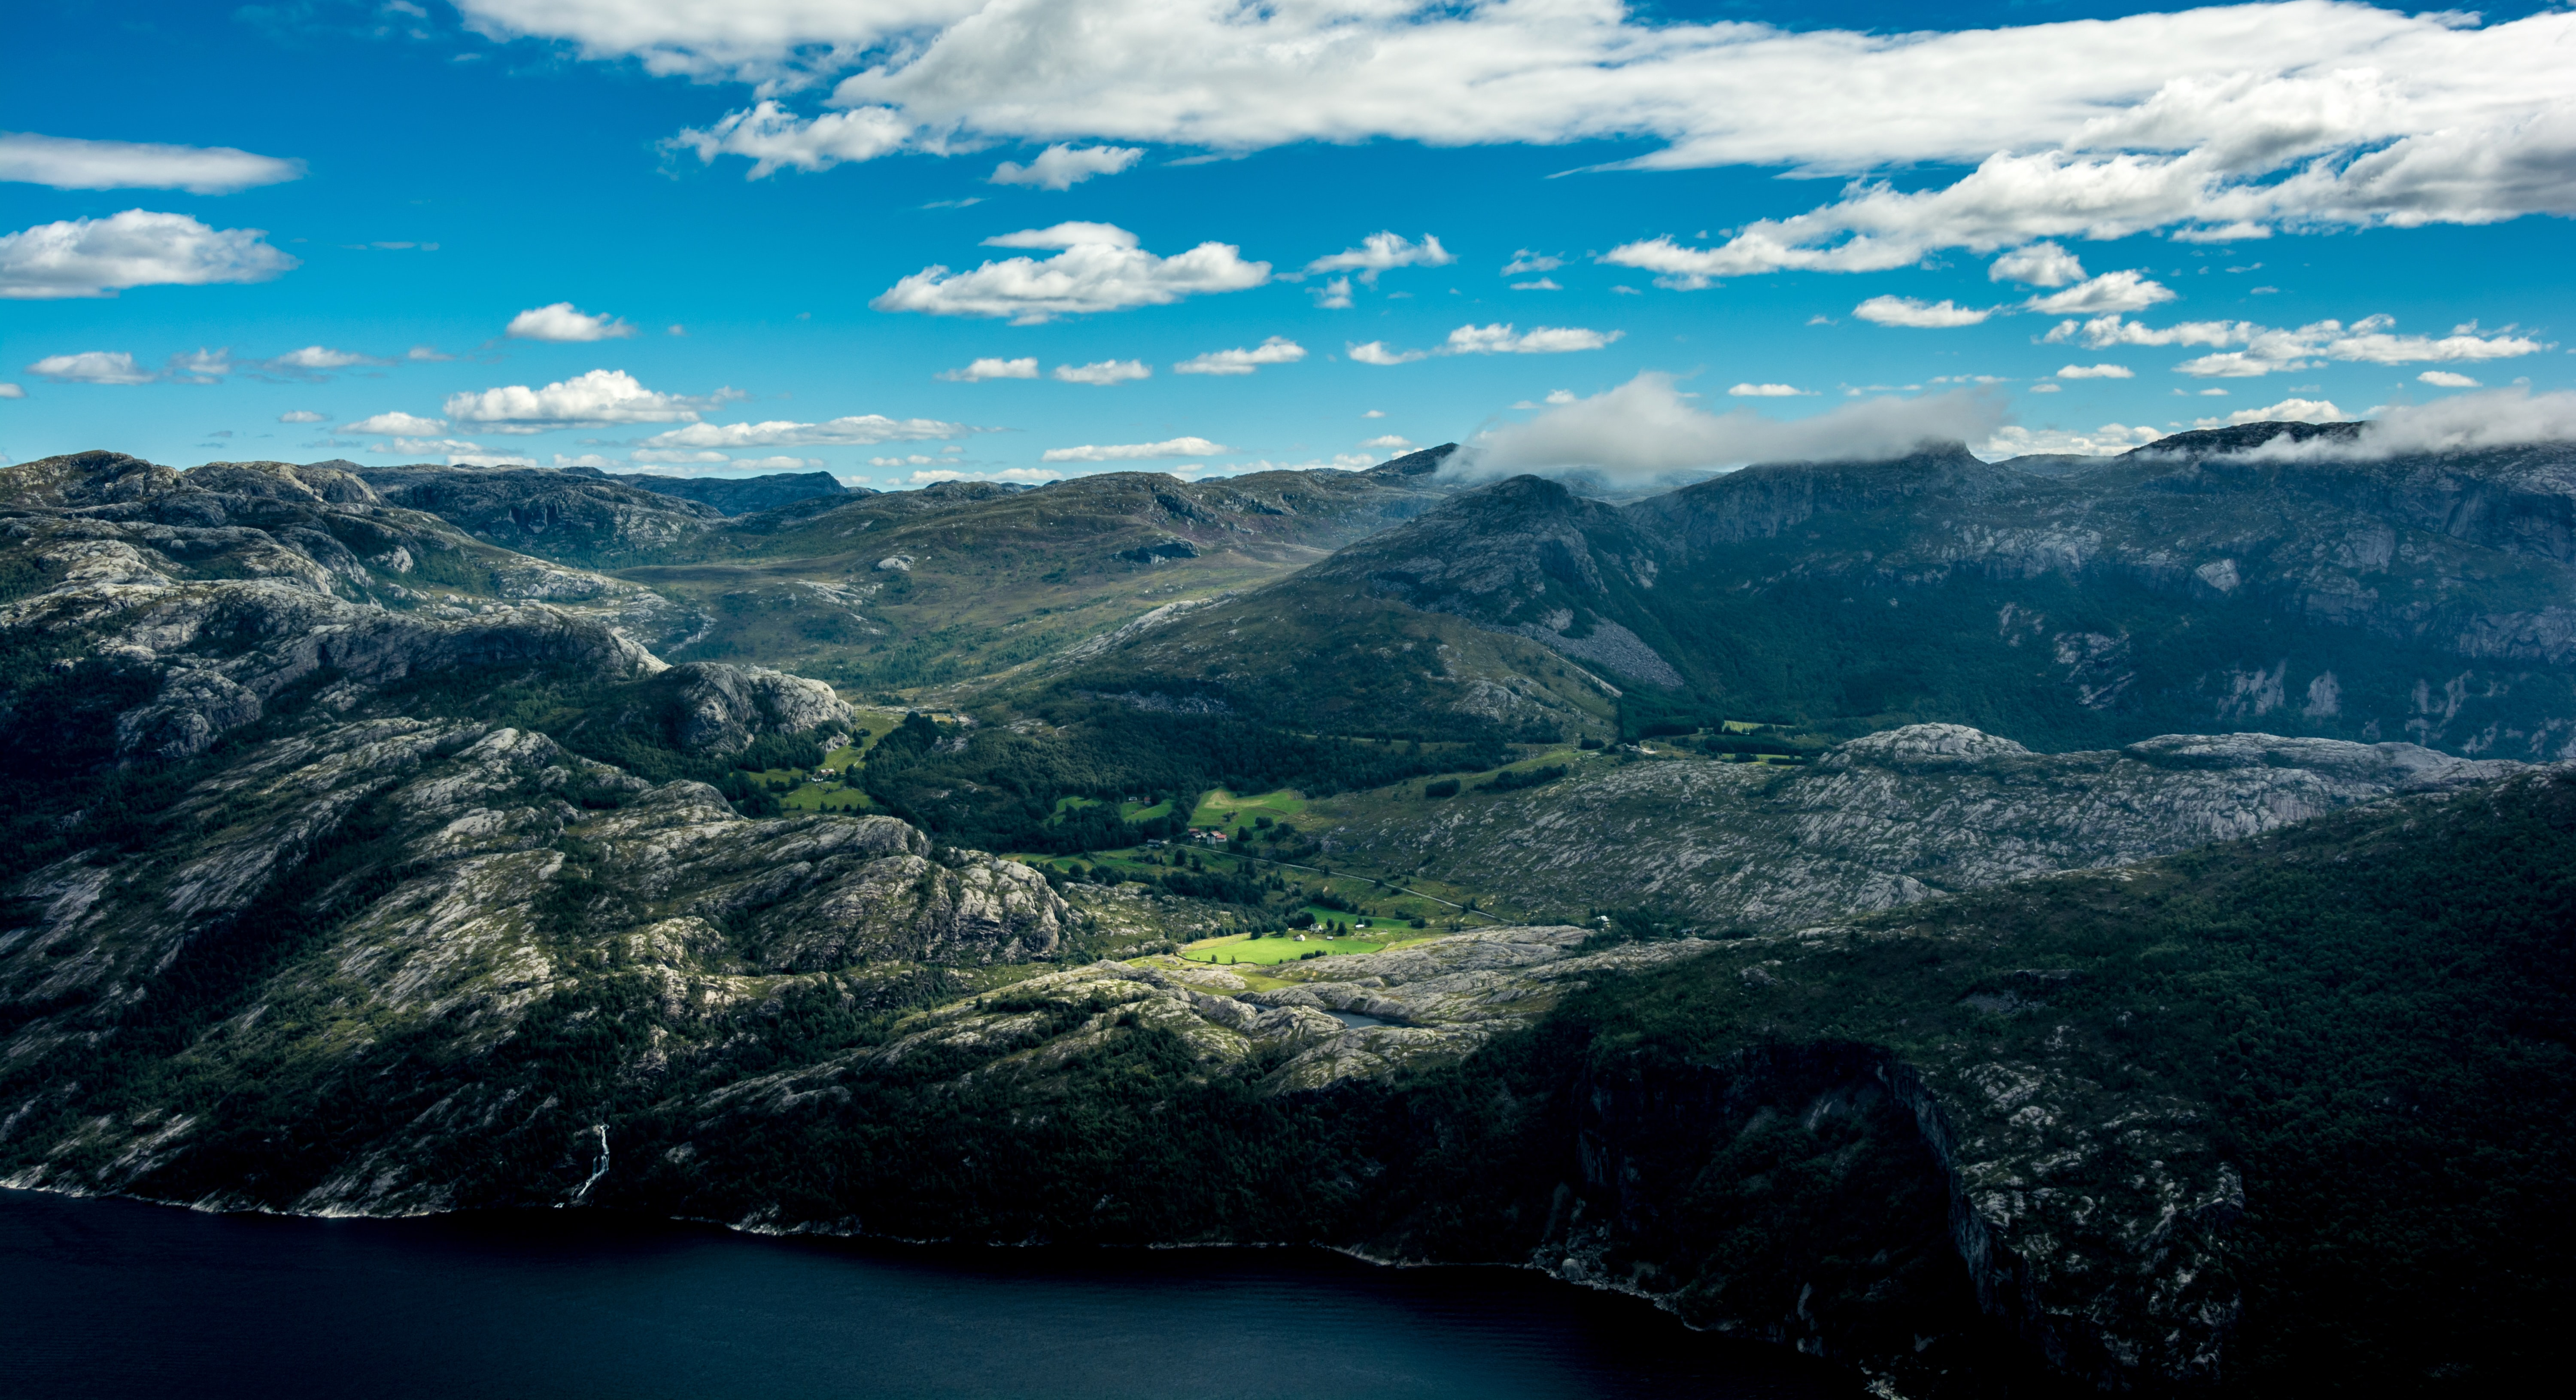 A small rural area on a rocky fiord in Lysefjorden